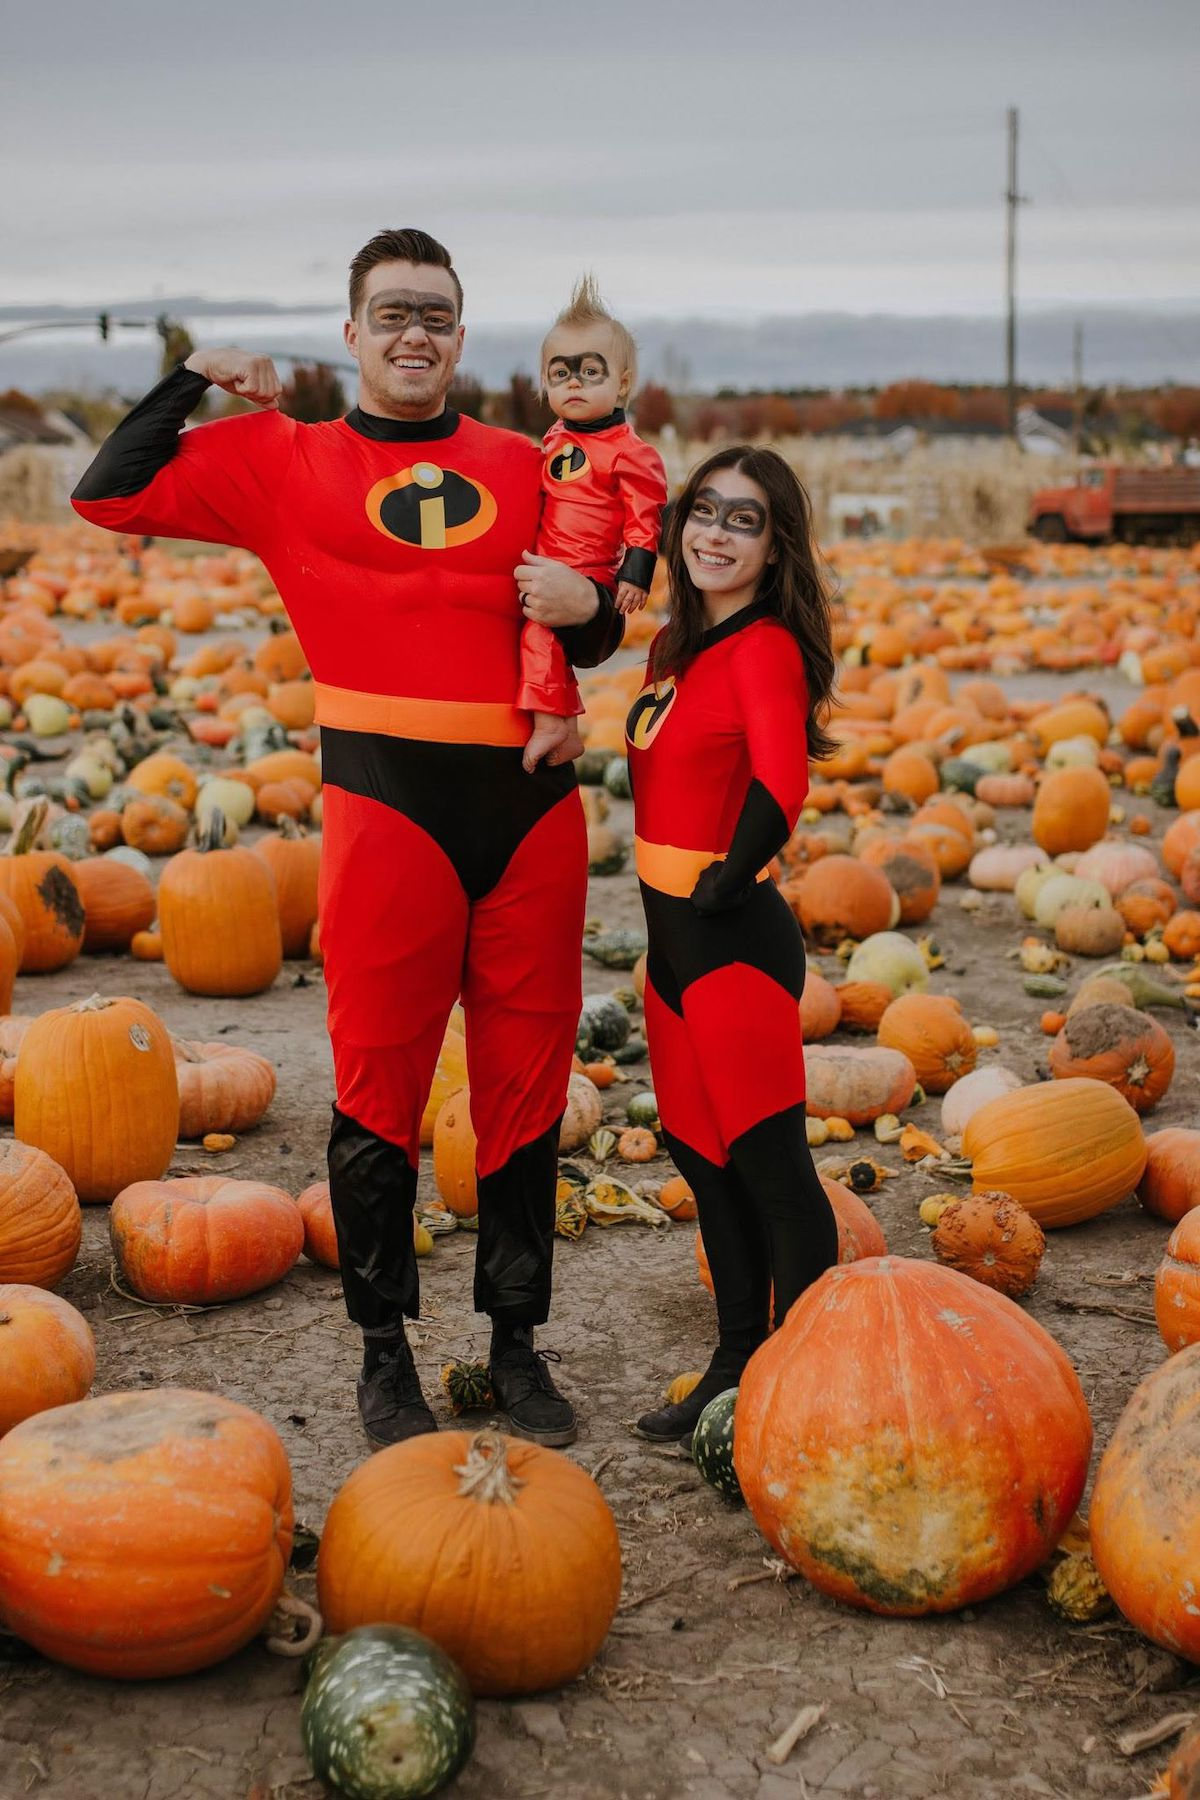 Family wearing Incredibles costumes poses in pumpkin patch.